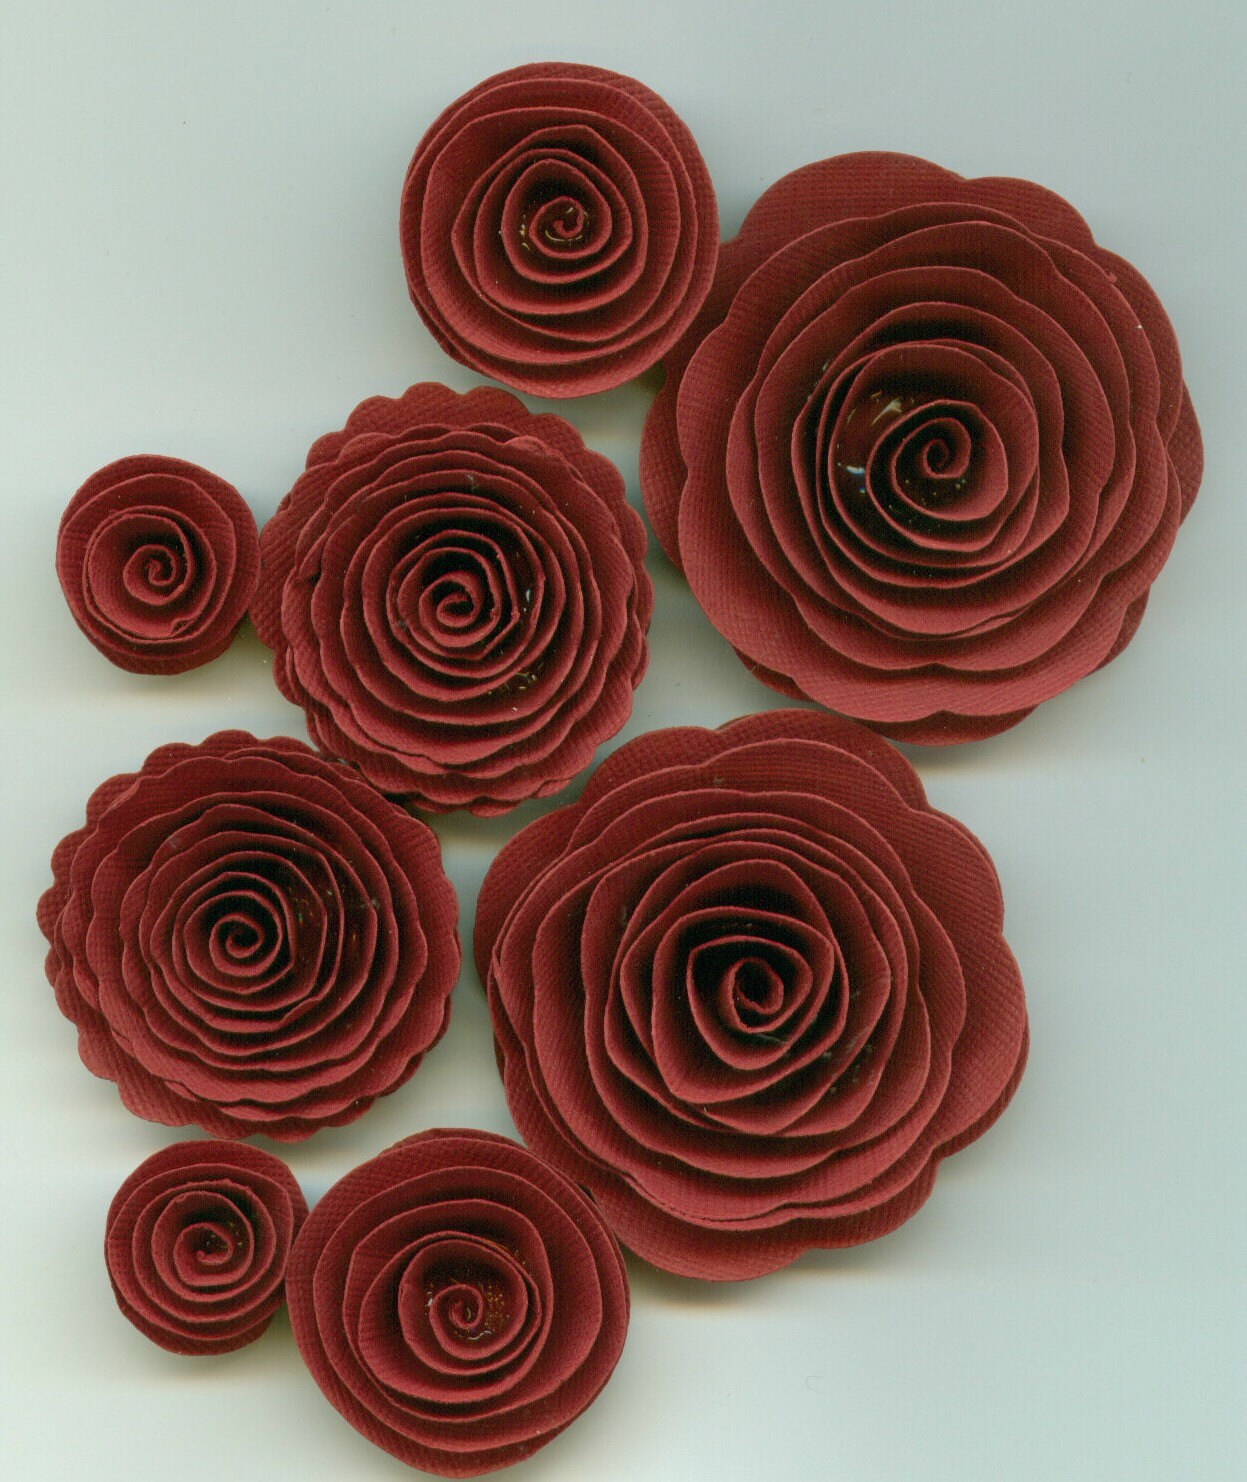 Crimson Red Rose Handmade Spiral Paper Flowers From Crazy2becrazy On